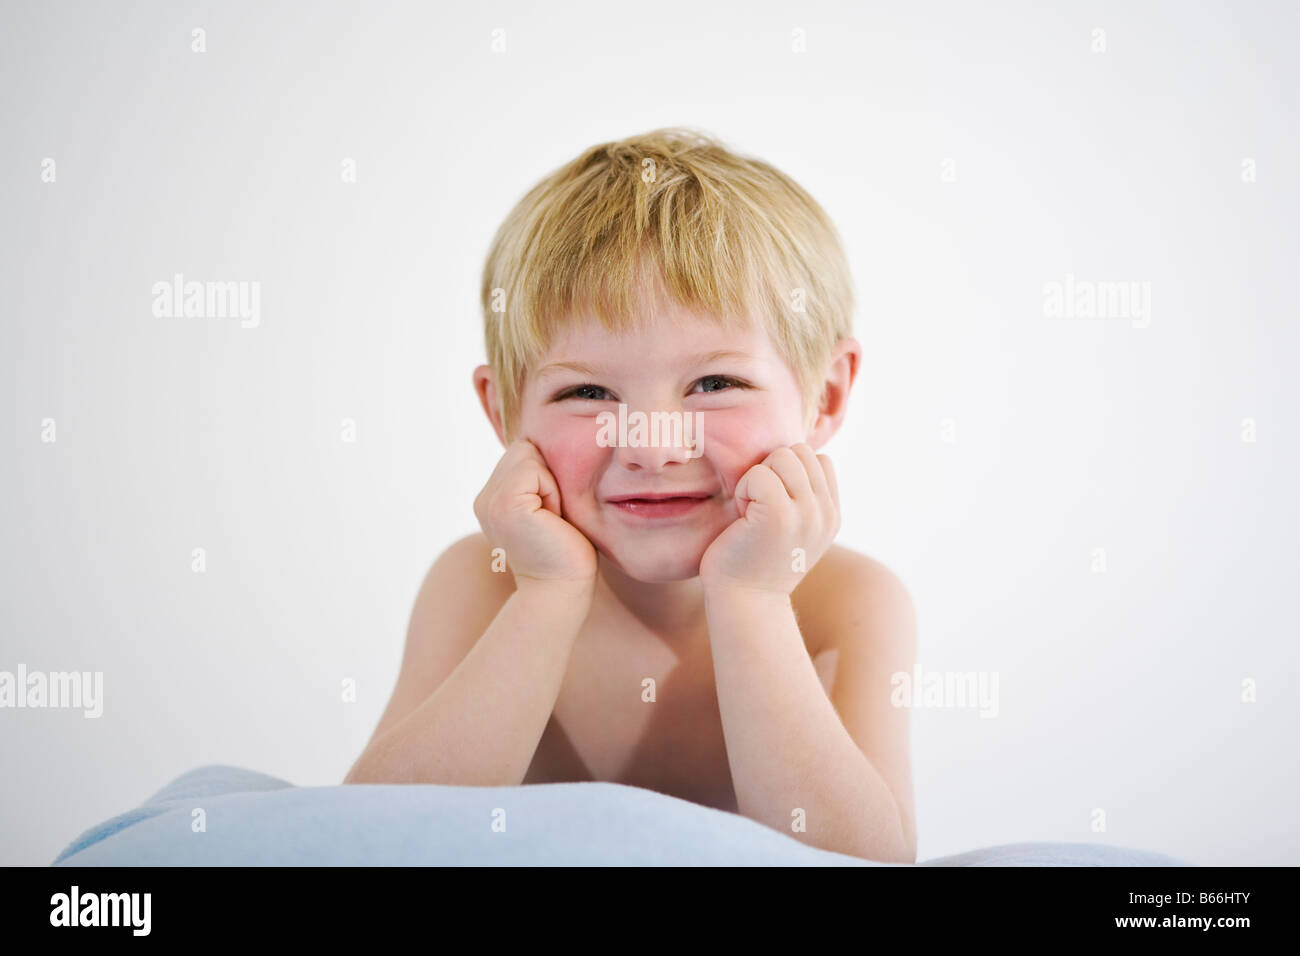 propped on pillow stock photos propped on pillow stock images alamy